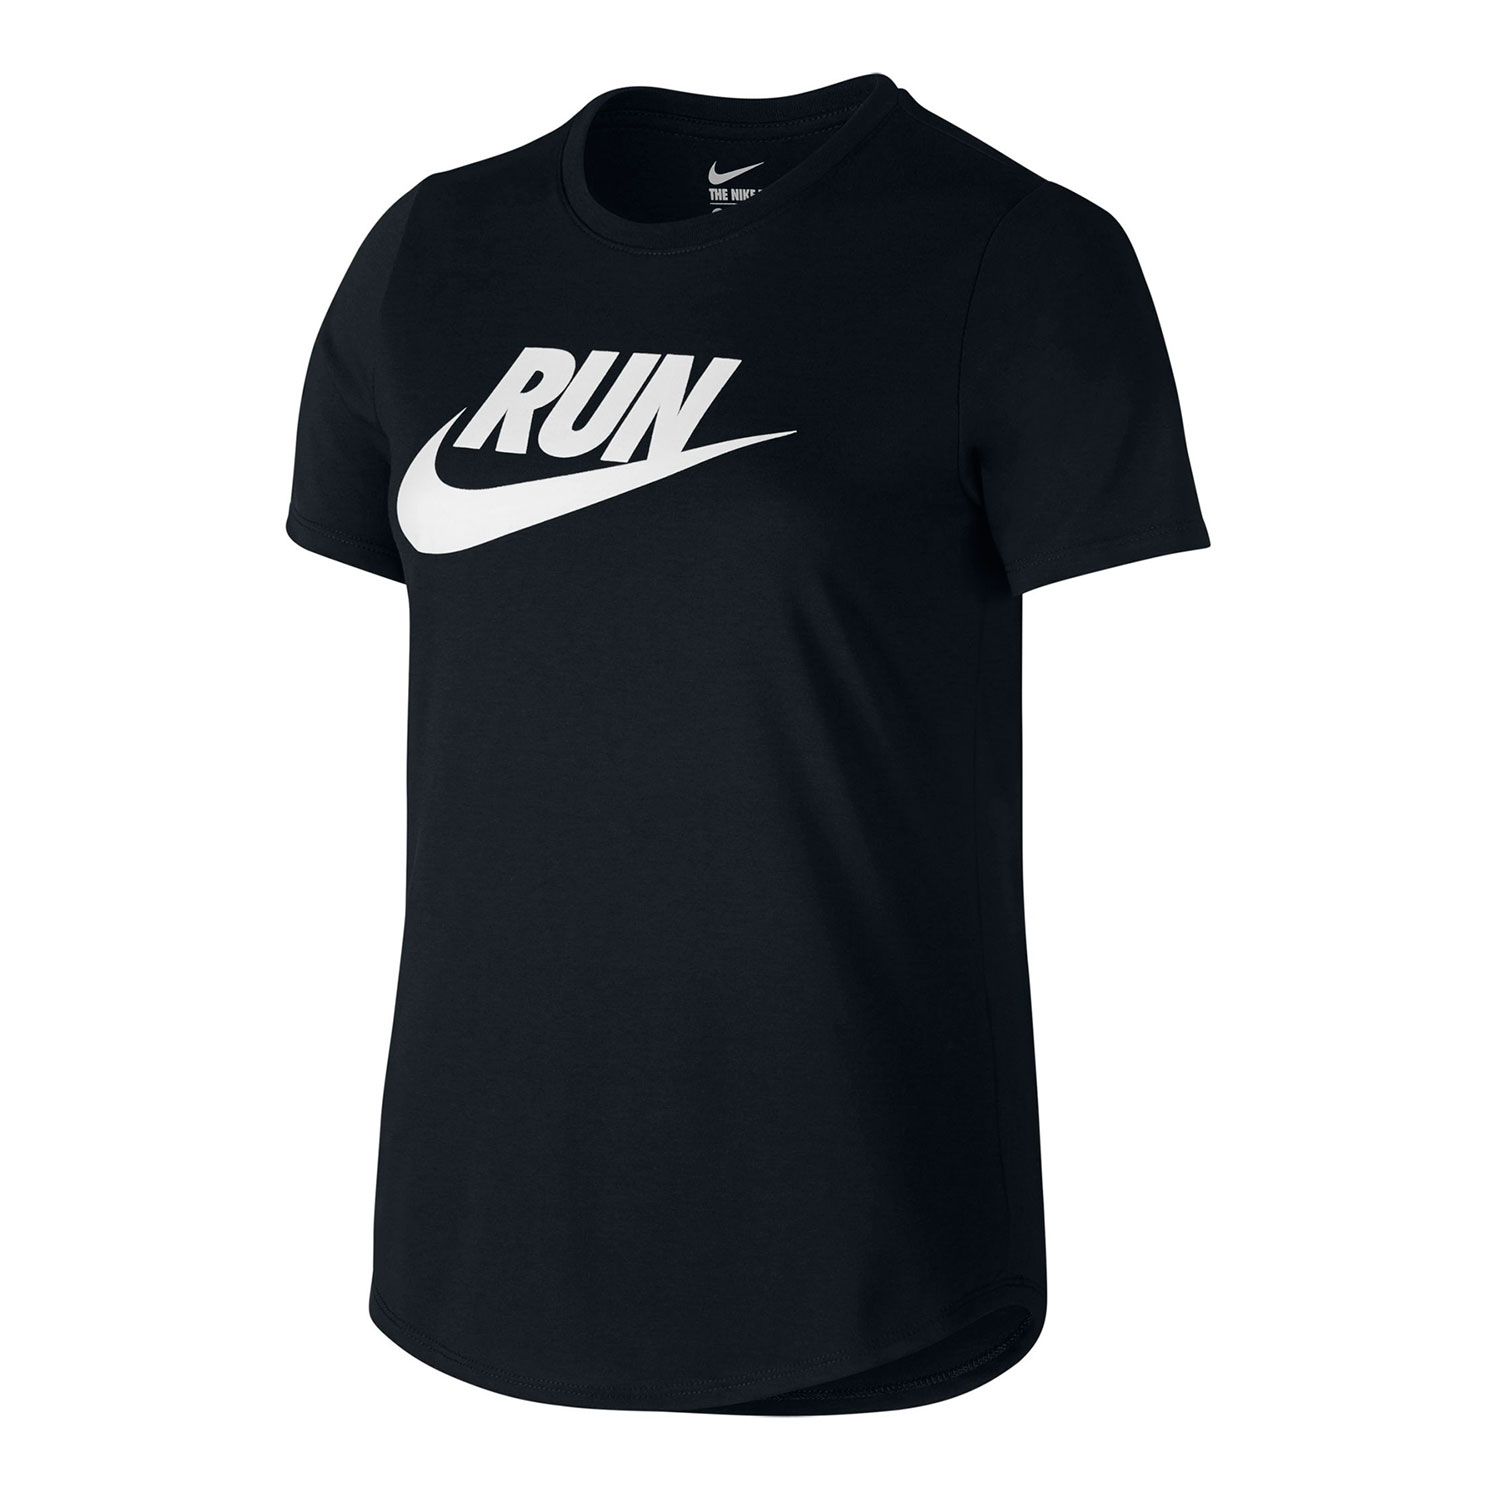 Nike womens run t shirt for Women s running shirts